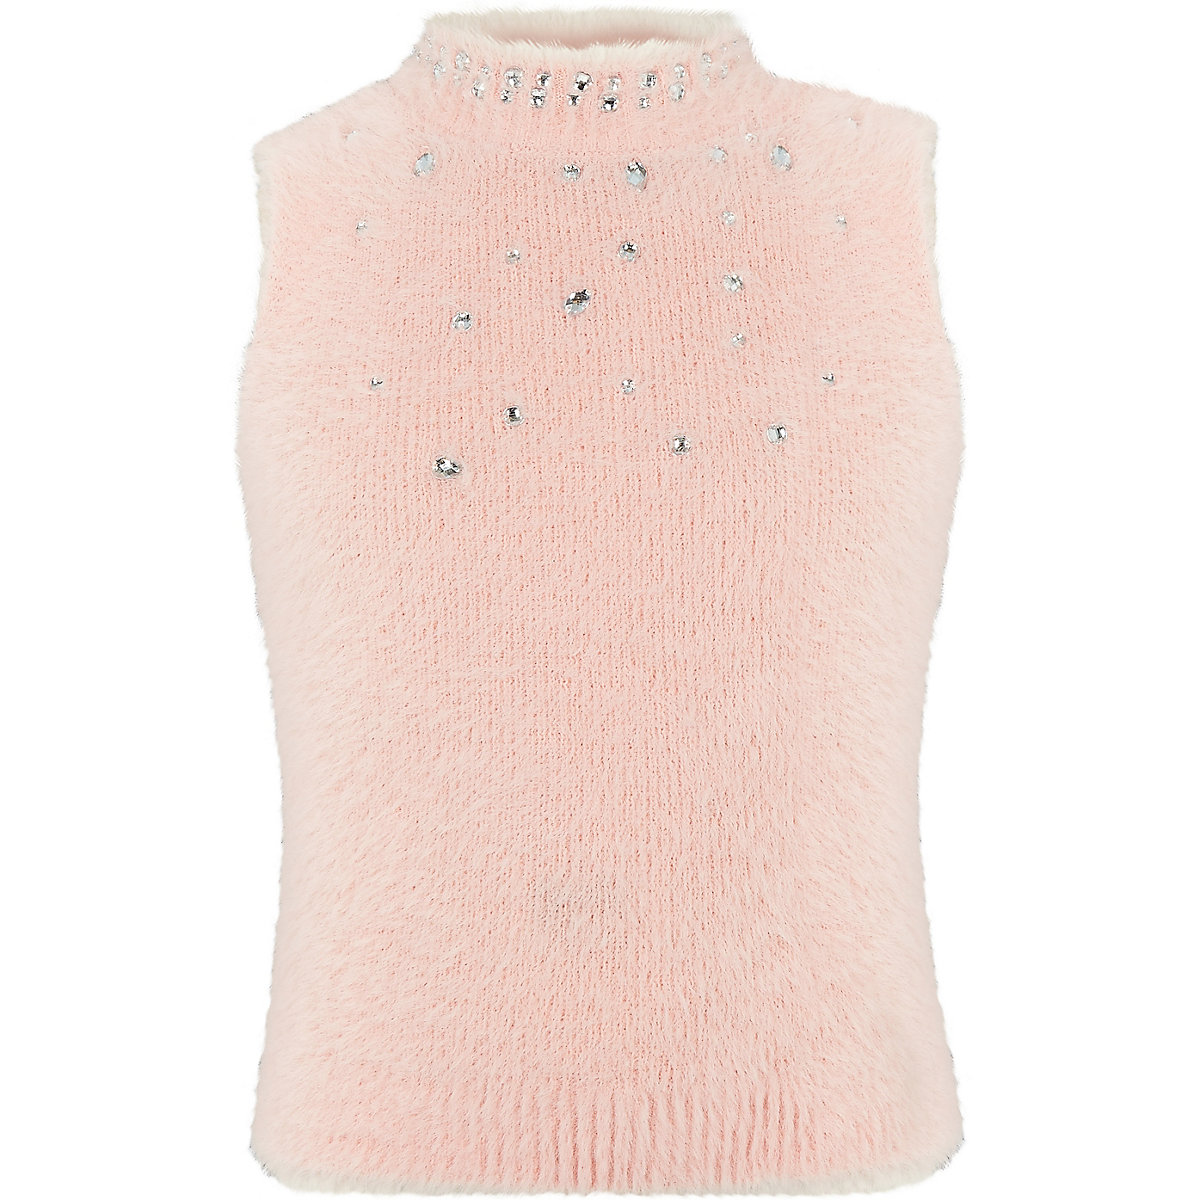 Girls pink diamante sleeveless fluffy top